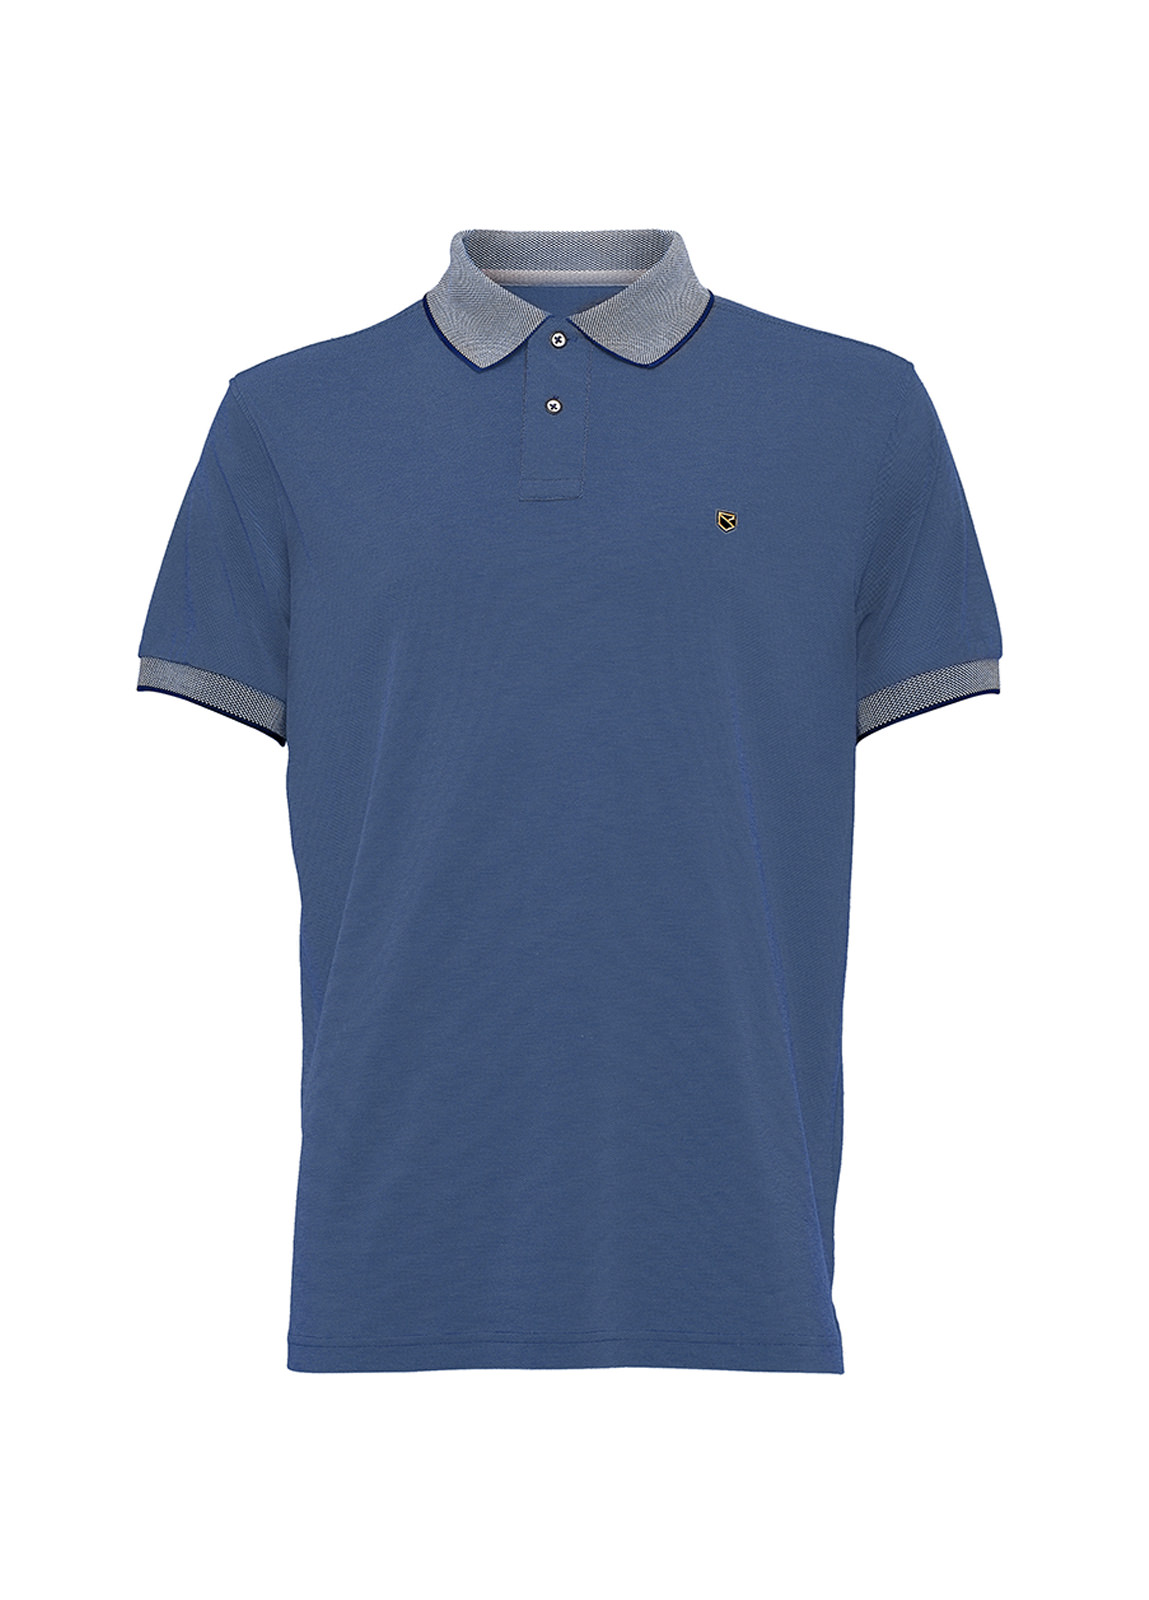 Dubarry_ Kylemore polo shirt - Denim_Image_2